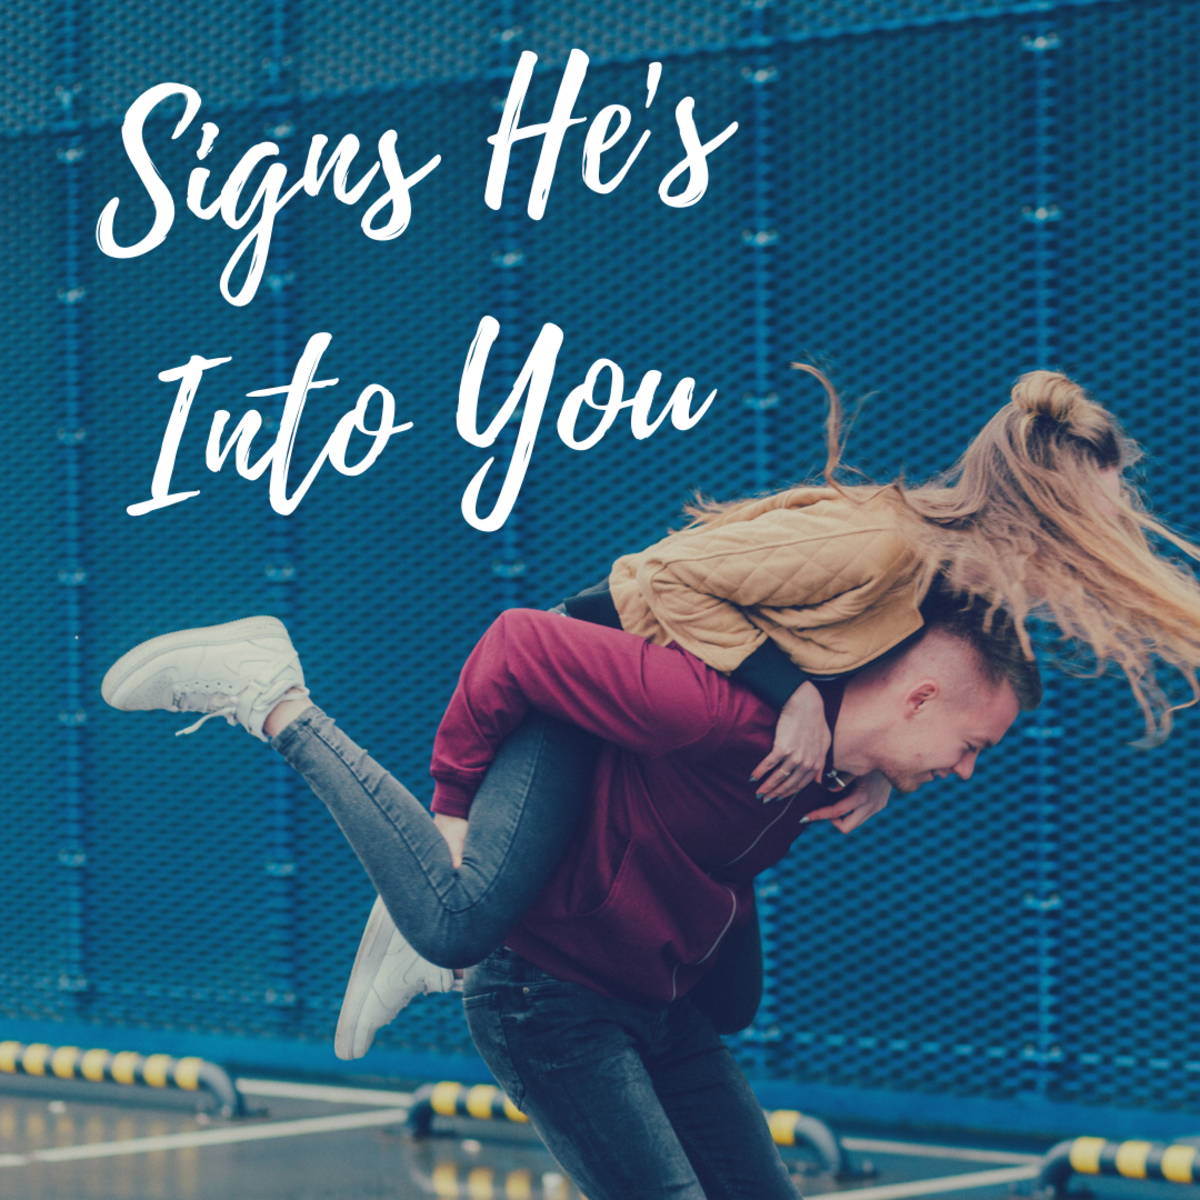 55 Signs a Guy Likes You Back